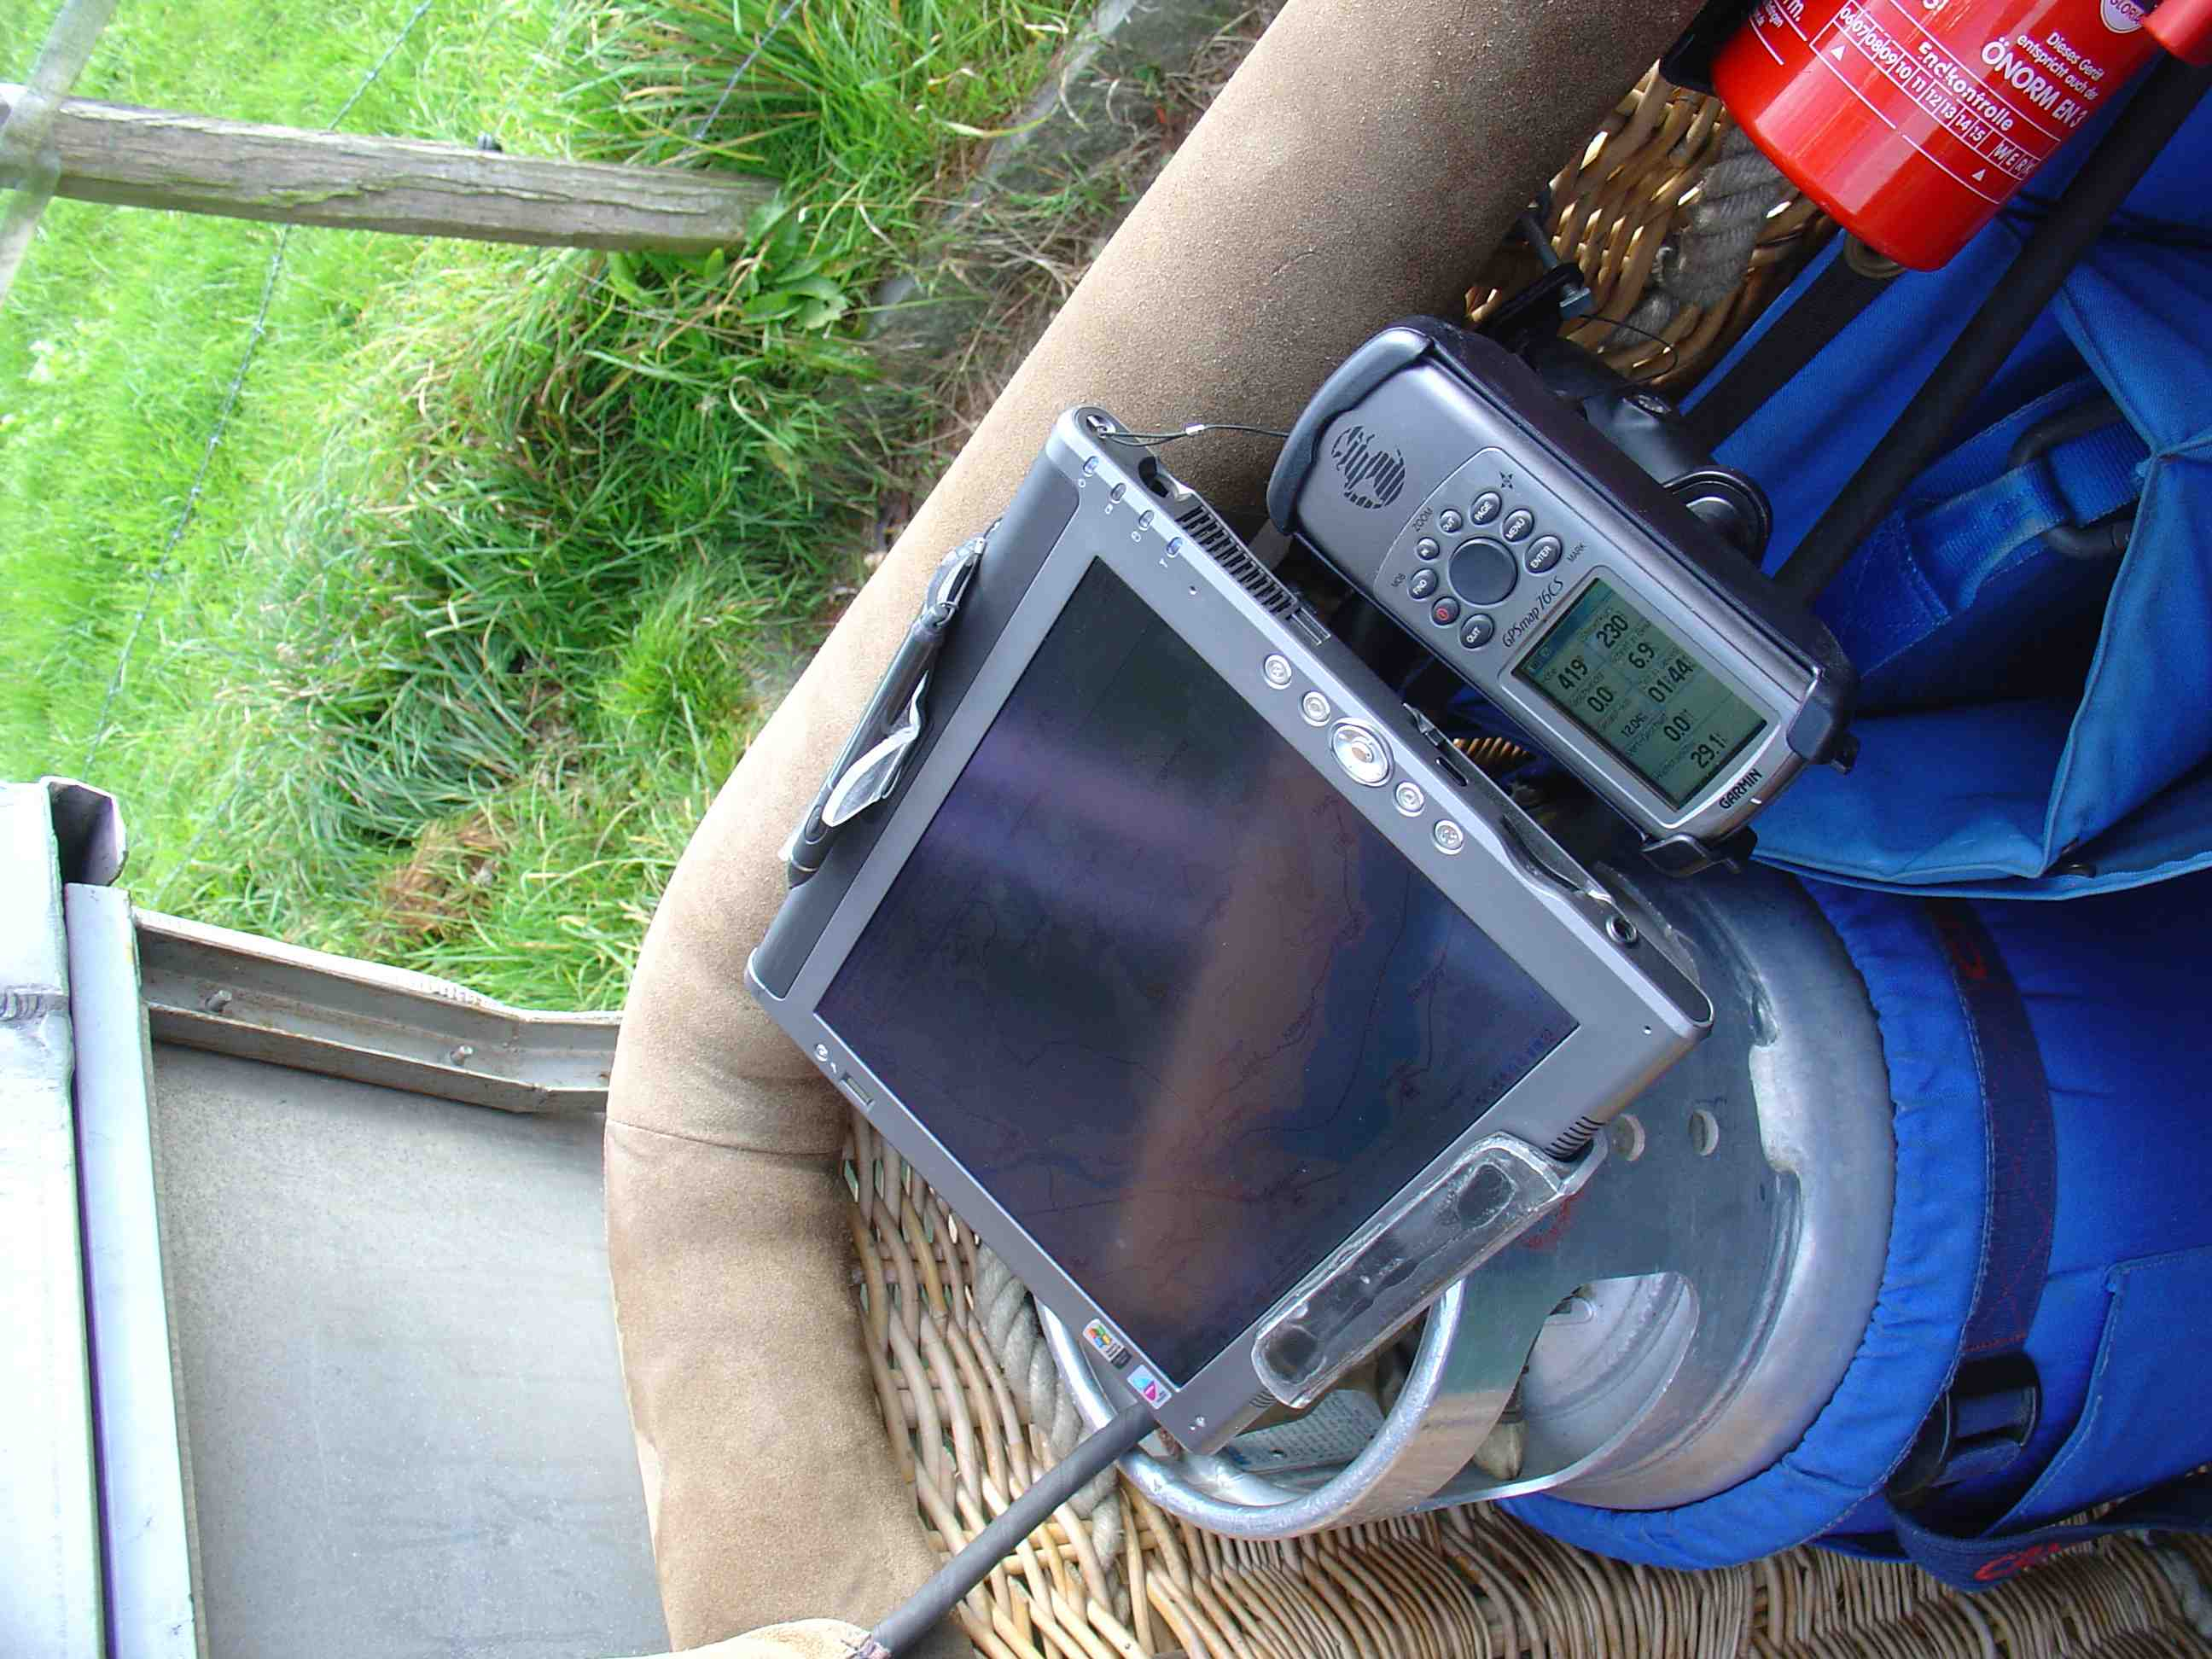 Aviation Gps And Mount Photos Articles Lifeproof Ipad Air Fre Case 1907 02 Glacier Full Installation From The Side